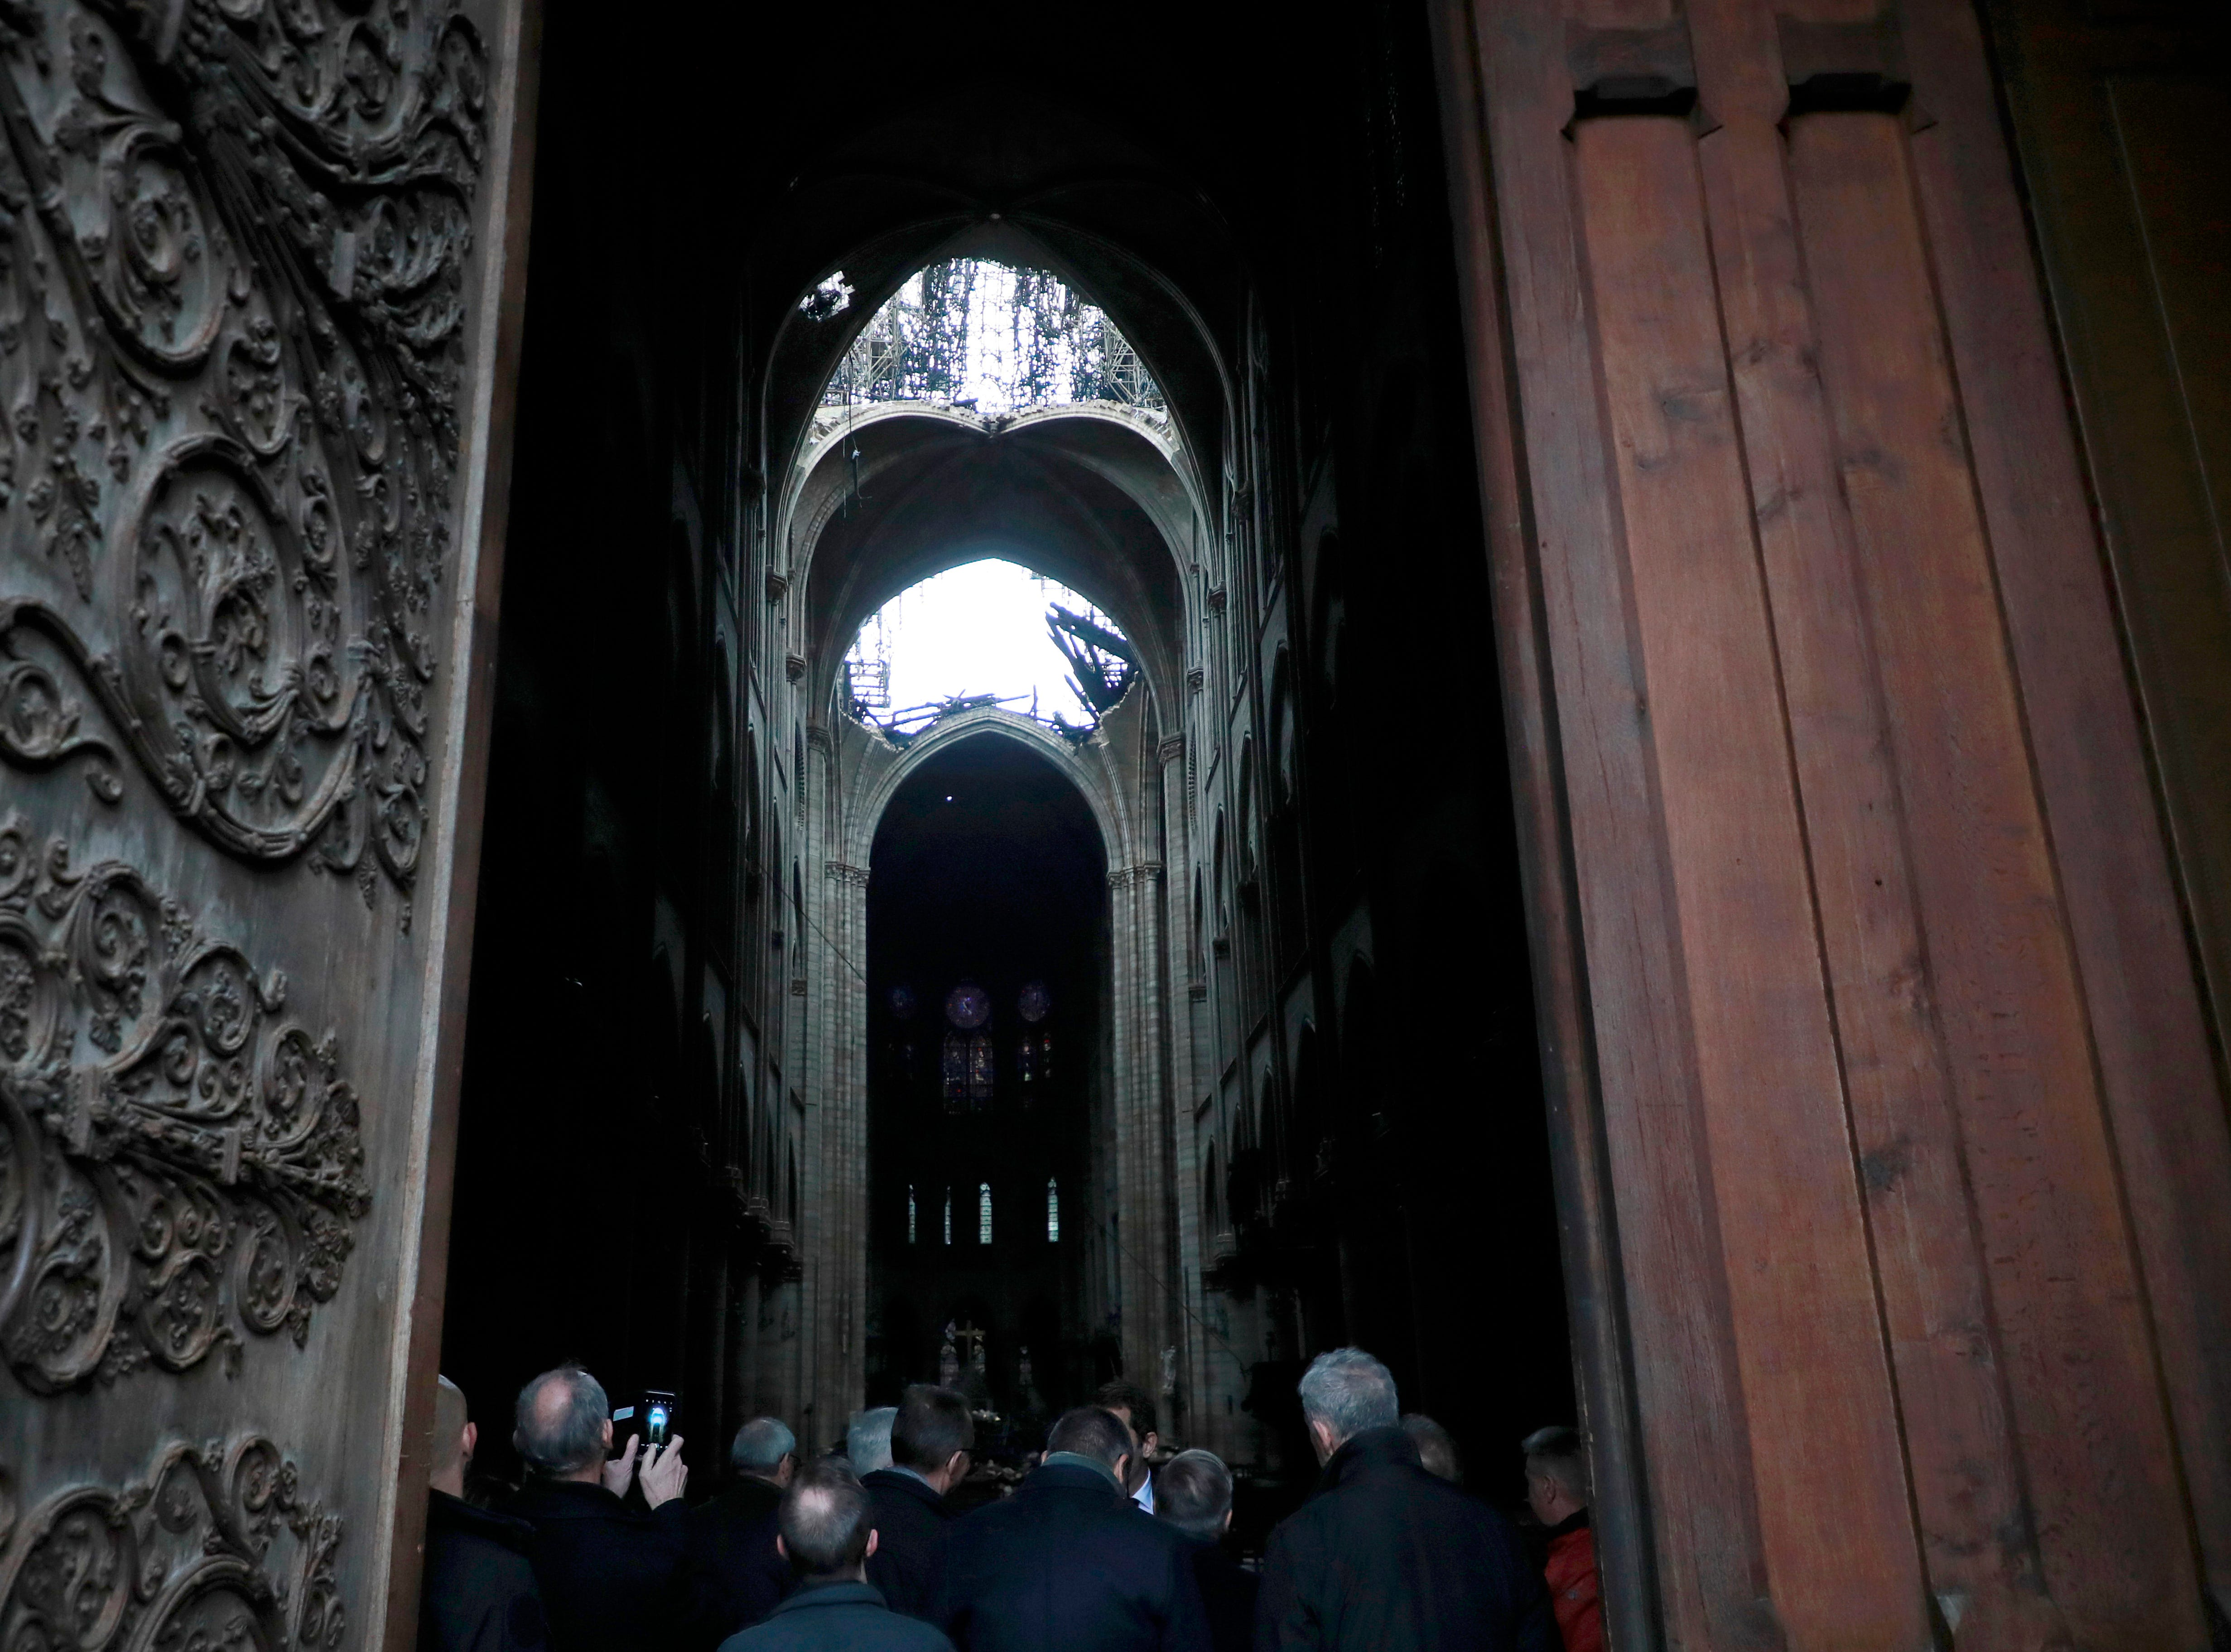 A hole is seen in the dome inside Notre cathedral in Paris, Tuesday, April 16, 2019. Firefighters declared success Tuesday in a more than 12-hour battle to extinguish an inferno engulfing Paris' iconic Notre Dame cathedral that claimed its spire and roof, but spared its bell towers and the purported Crown of Christ. (Christophe Petit Tesson, Pool via AP)